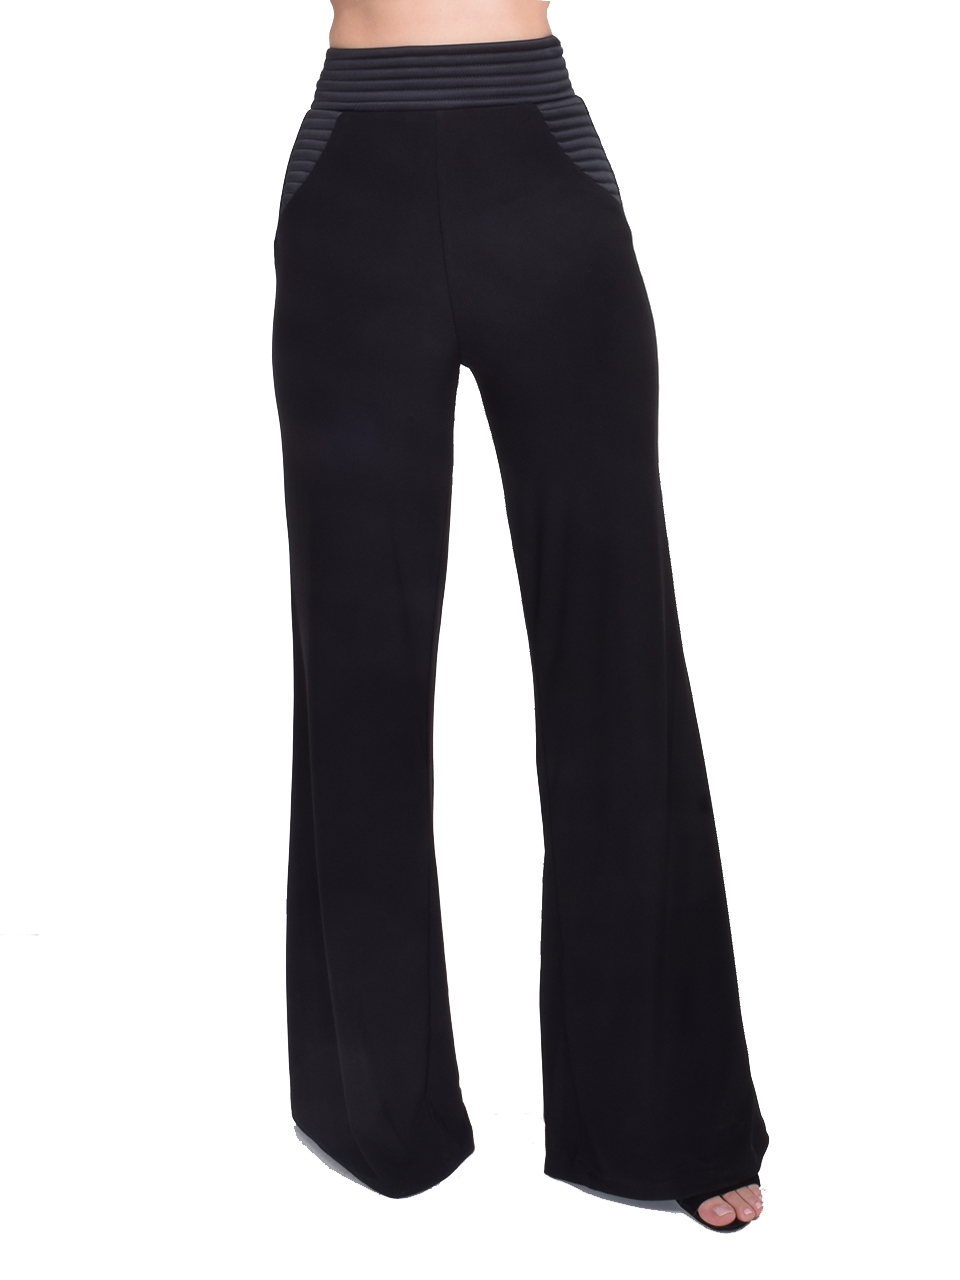 Zhivago Ready Wide Leg Pant in Black Front View  X1https://cdn11.bigcommerce.com/s-3wu6n/products/33189/images/109419/52__48224.1590178972.244.365.jpg?c=2X2